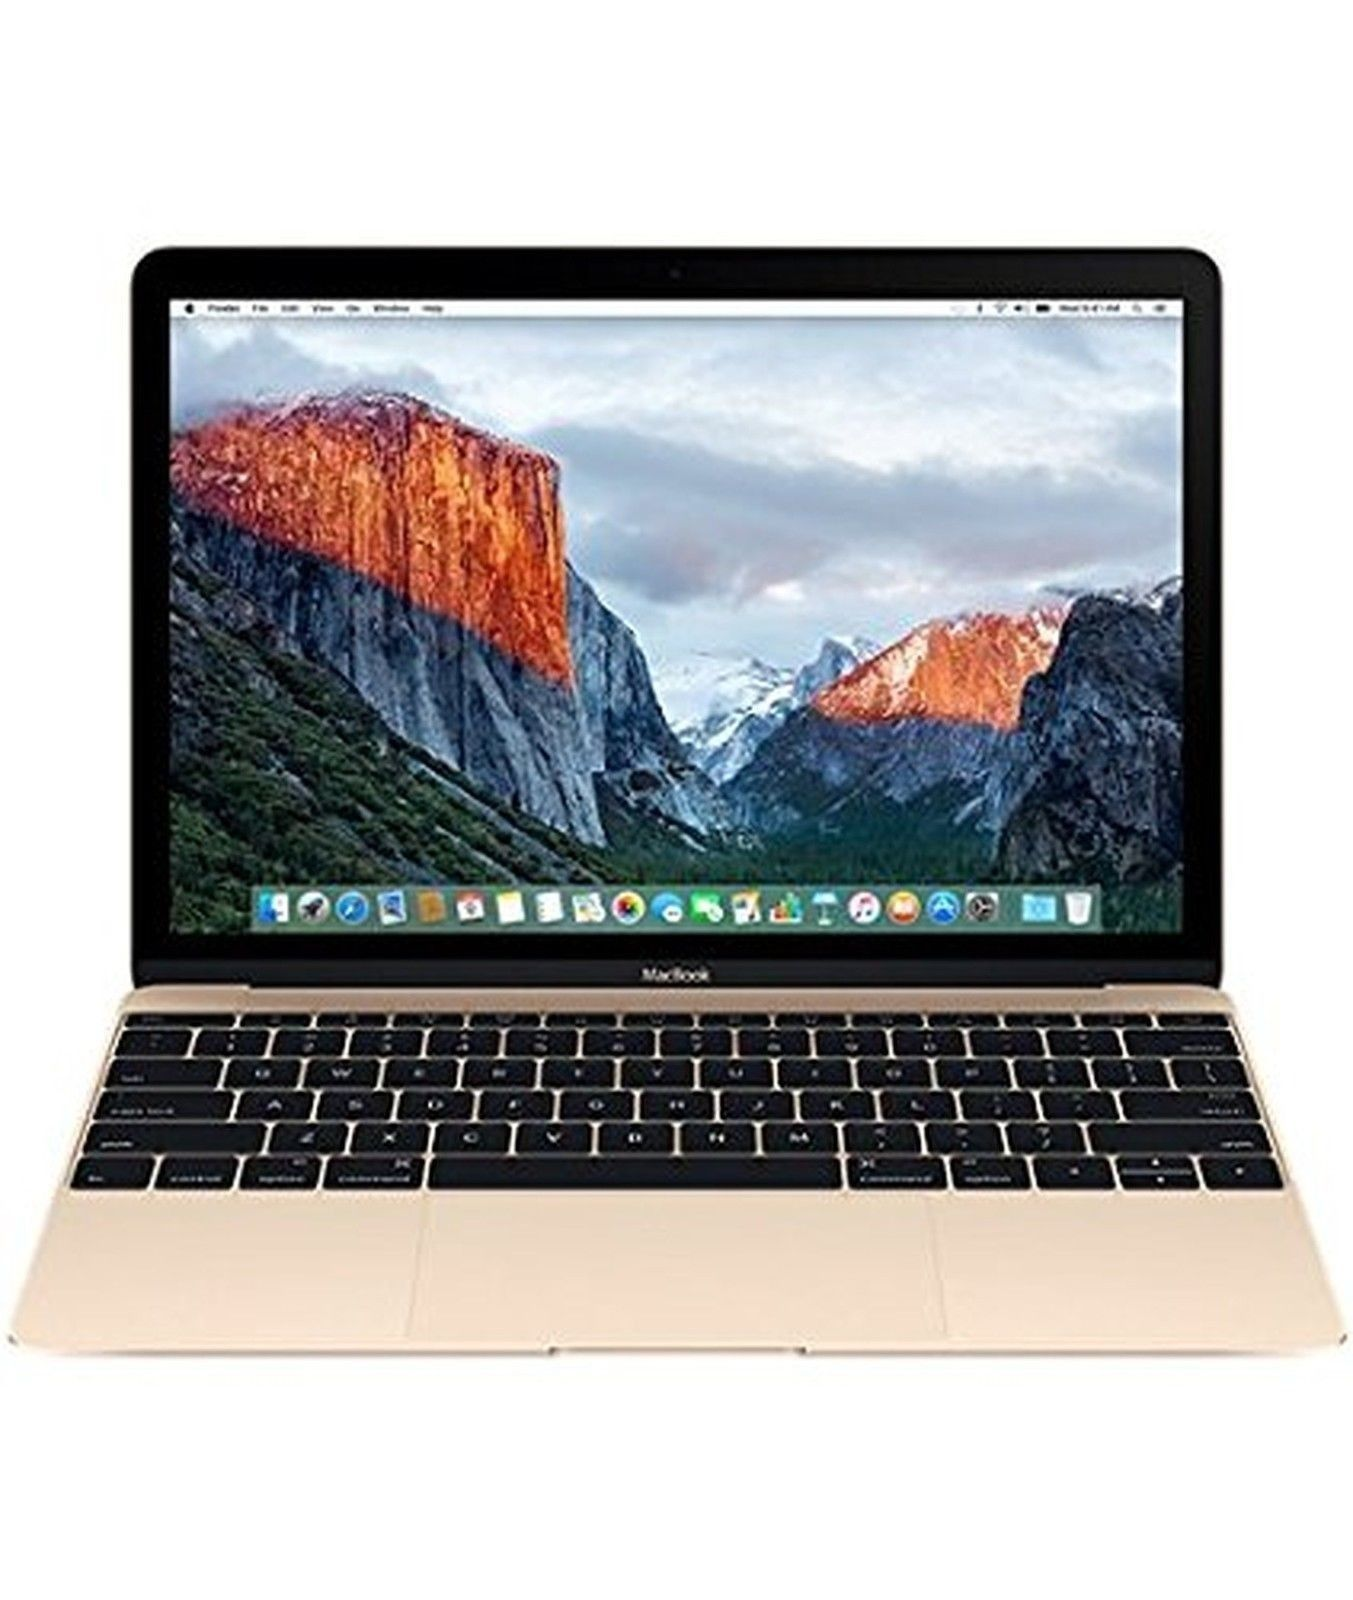 Apple MacBook MLHE2LL/A 12Inch Laptop with Retina Display